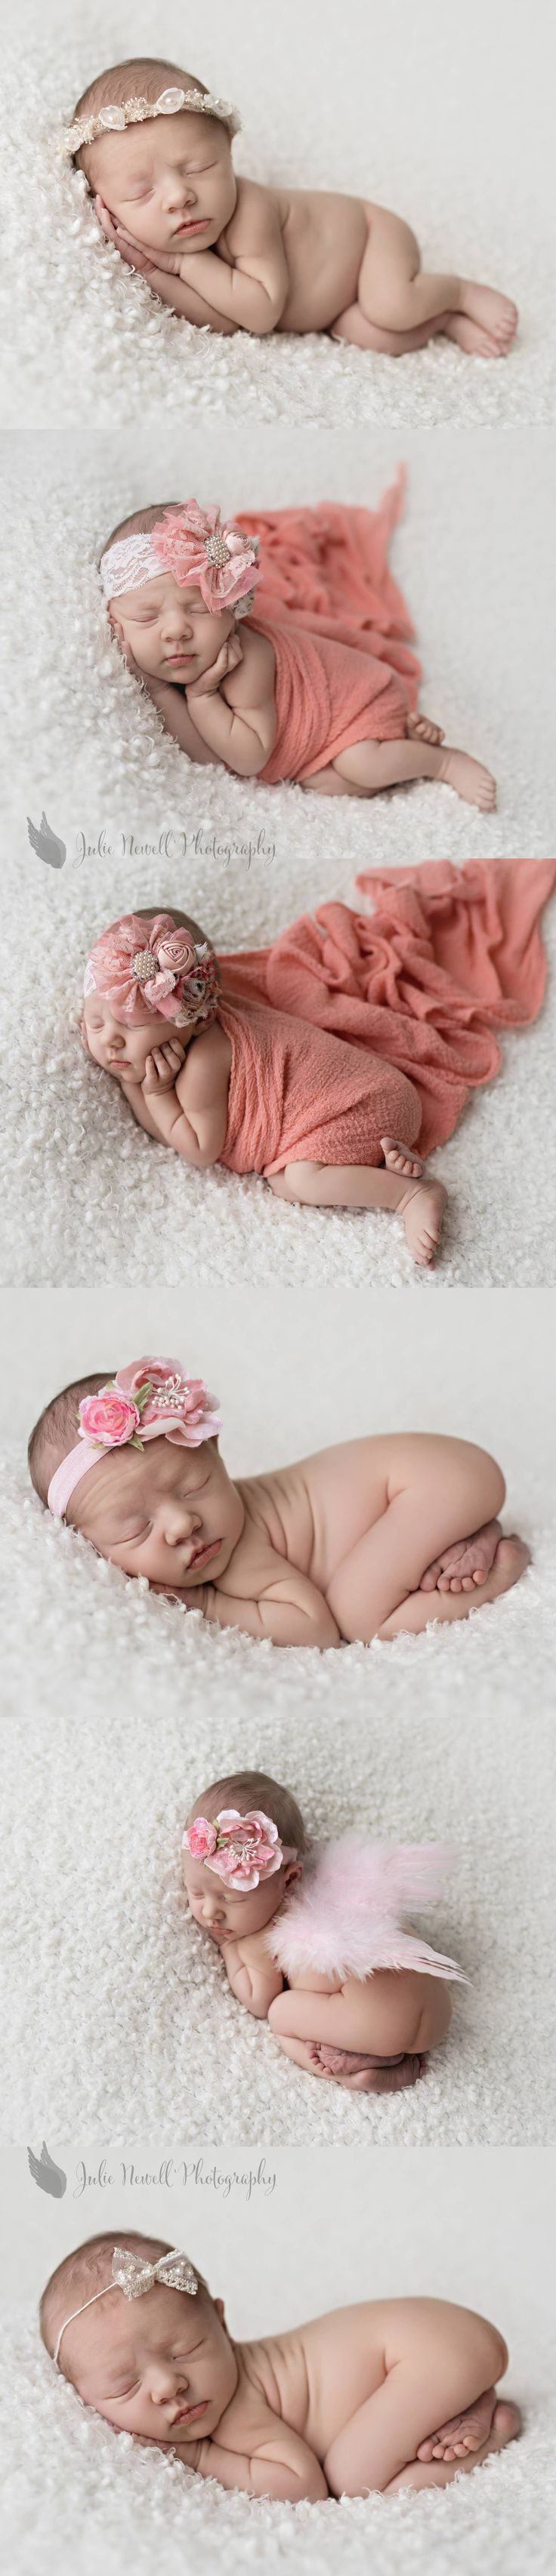 newborn photographer, newborn photography, chicago newborn photographer, chicago newborn photography, newborn girl photographer, newborn girl photography #newbornphotography